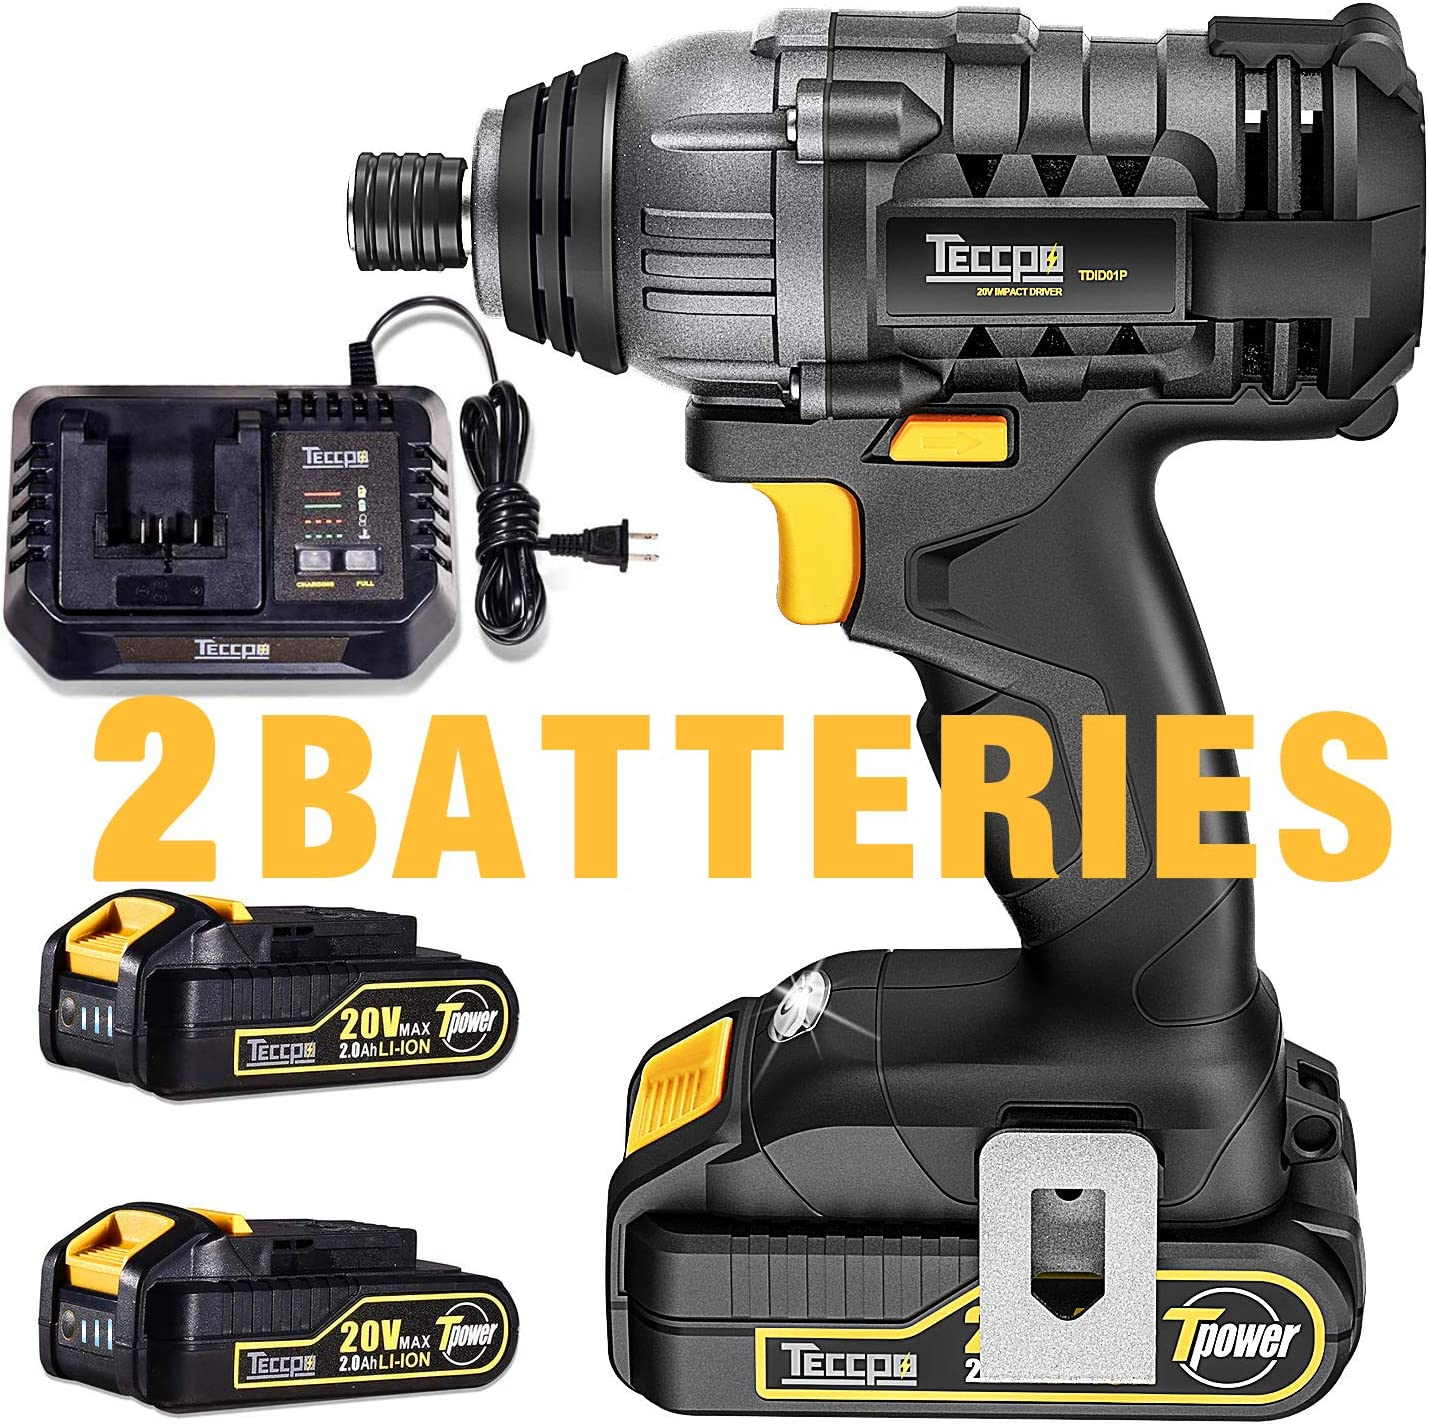 "Impact Driver, TECCPO 1600In-lbs 20V MAX Impact Drill, 2X2.0Ah Batteries, 1/4"" All-metal Hex Chuck, 30 Minutes Fast Charger, 0-2900RPM Variable Speed, Tool Bag Included - TDID01P"